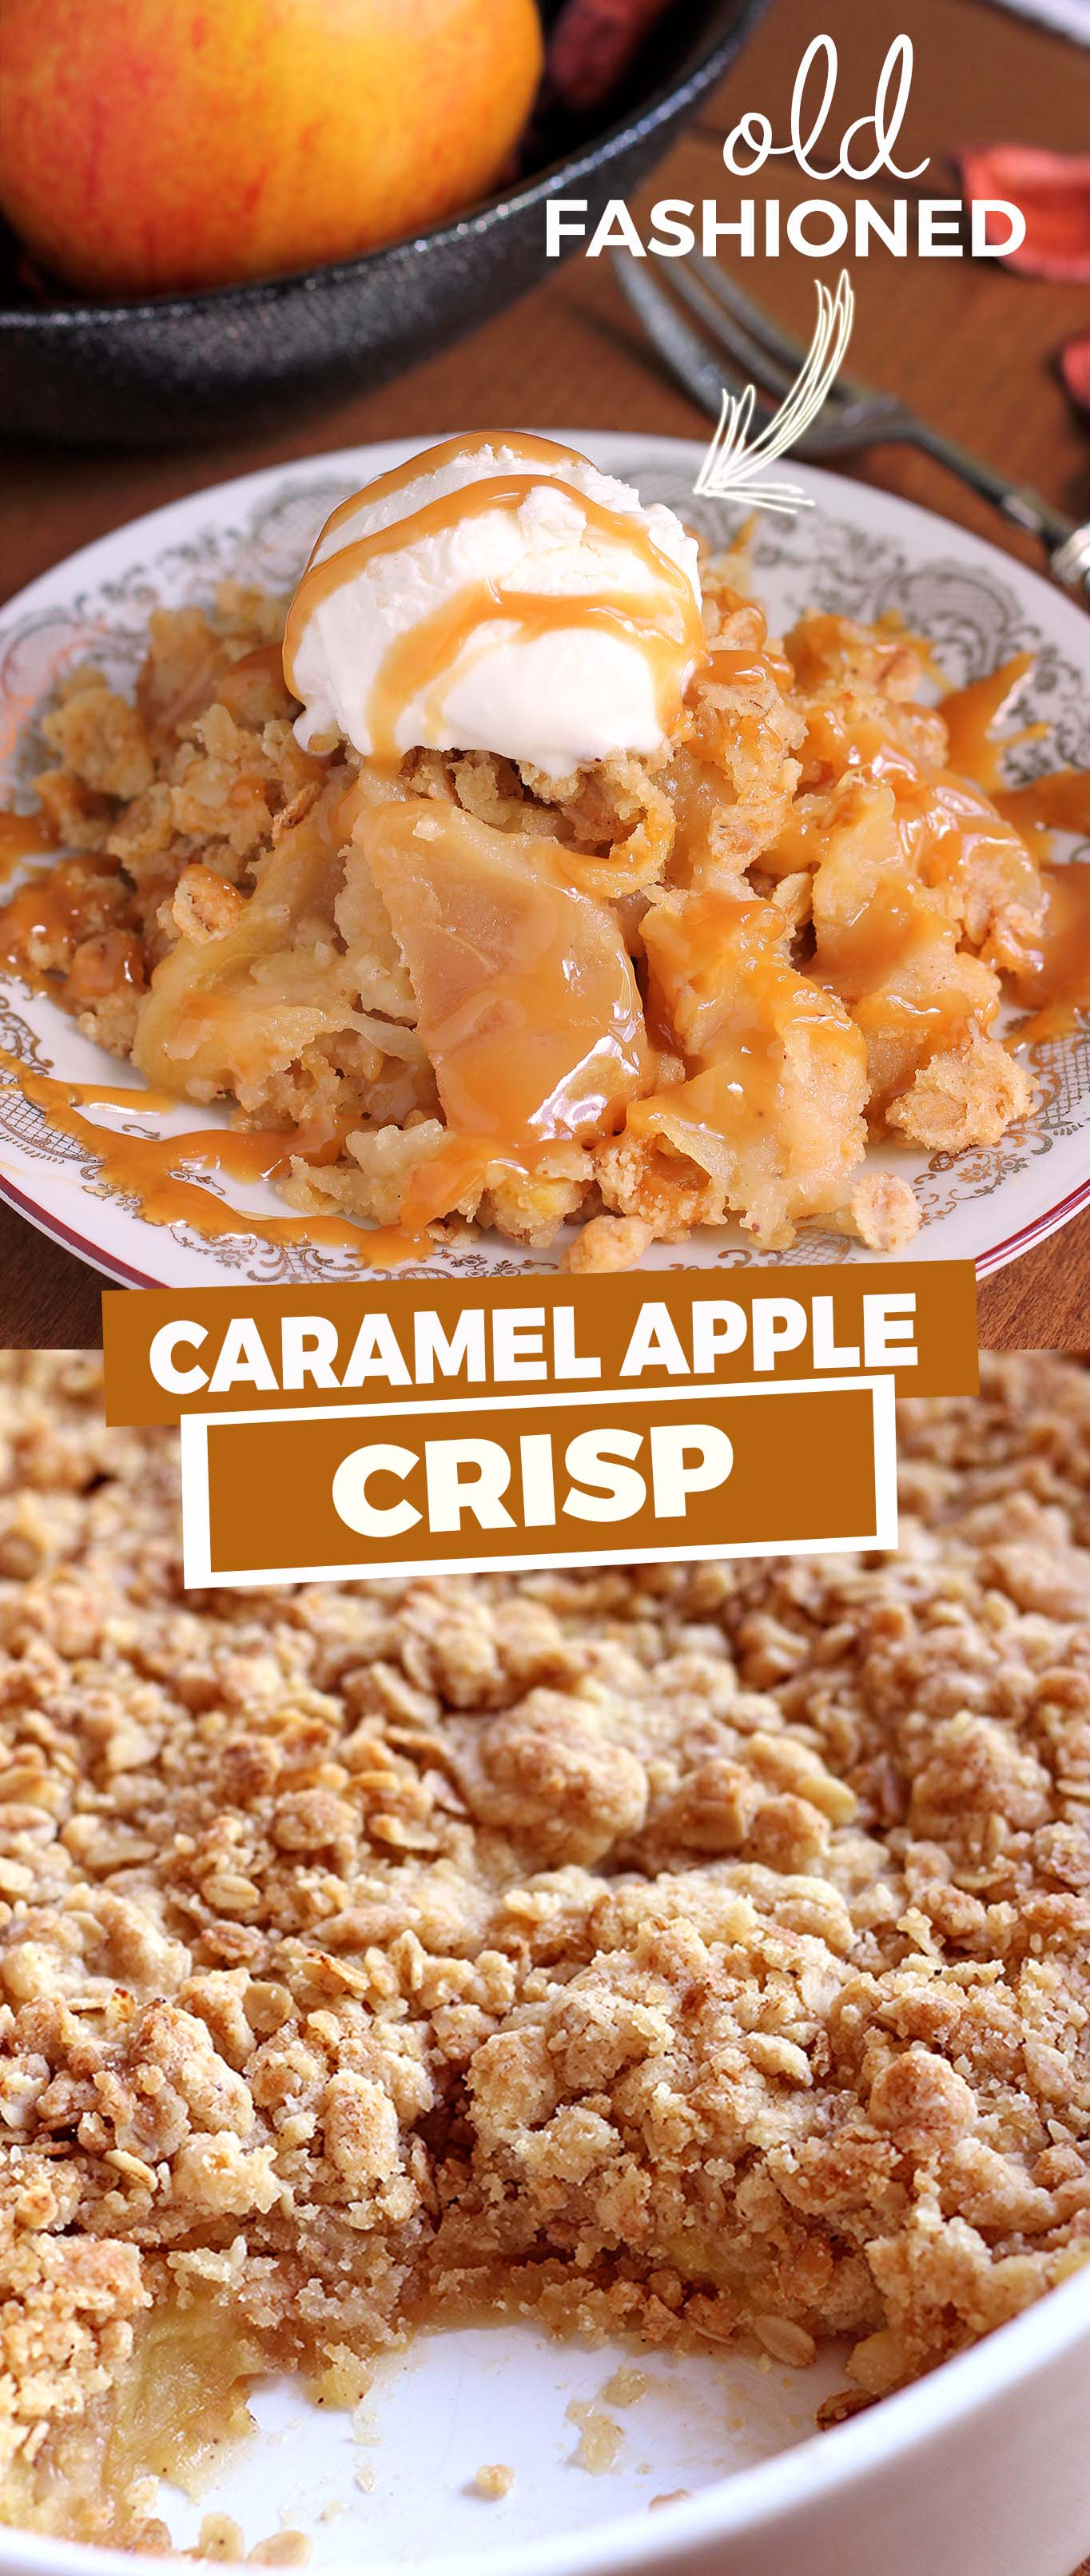 A true classic Fall dessert, this easy apple crisp is made the old fashioned way like Grandma used to make.